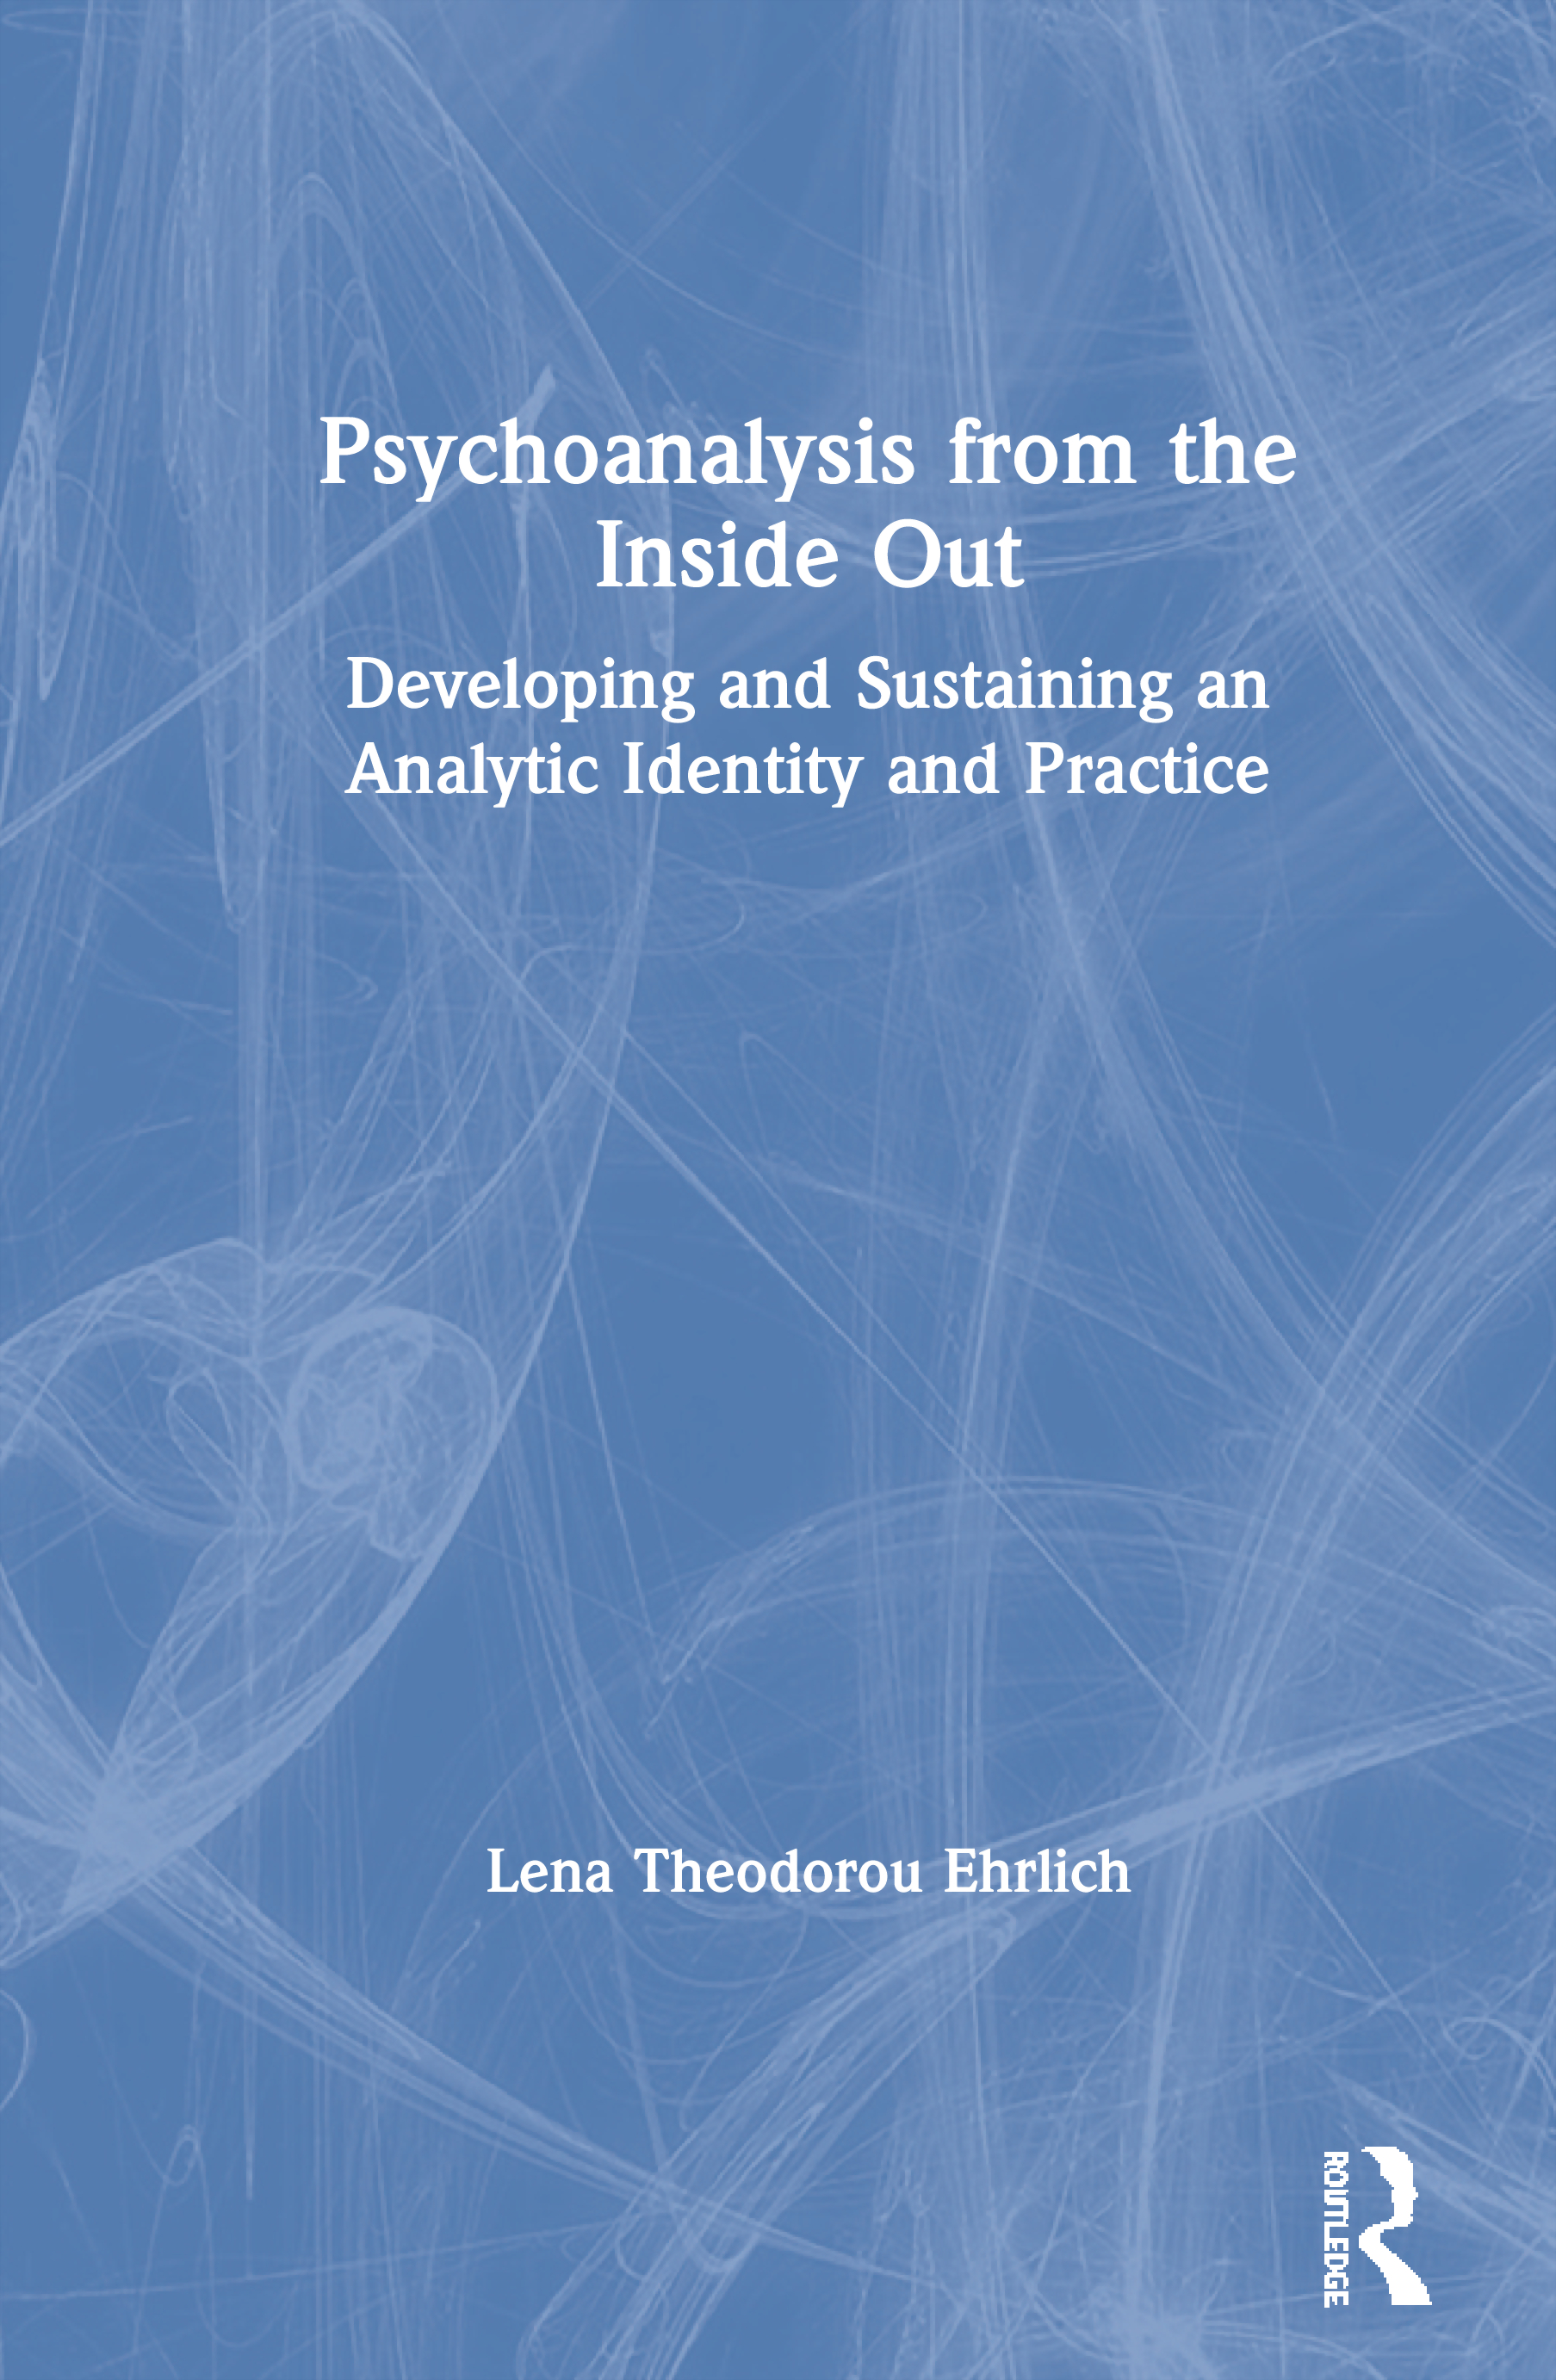 Psychoanalysis from the Inside Out: Developing and Sustaining an Analytic Identity and Practice book cover